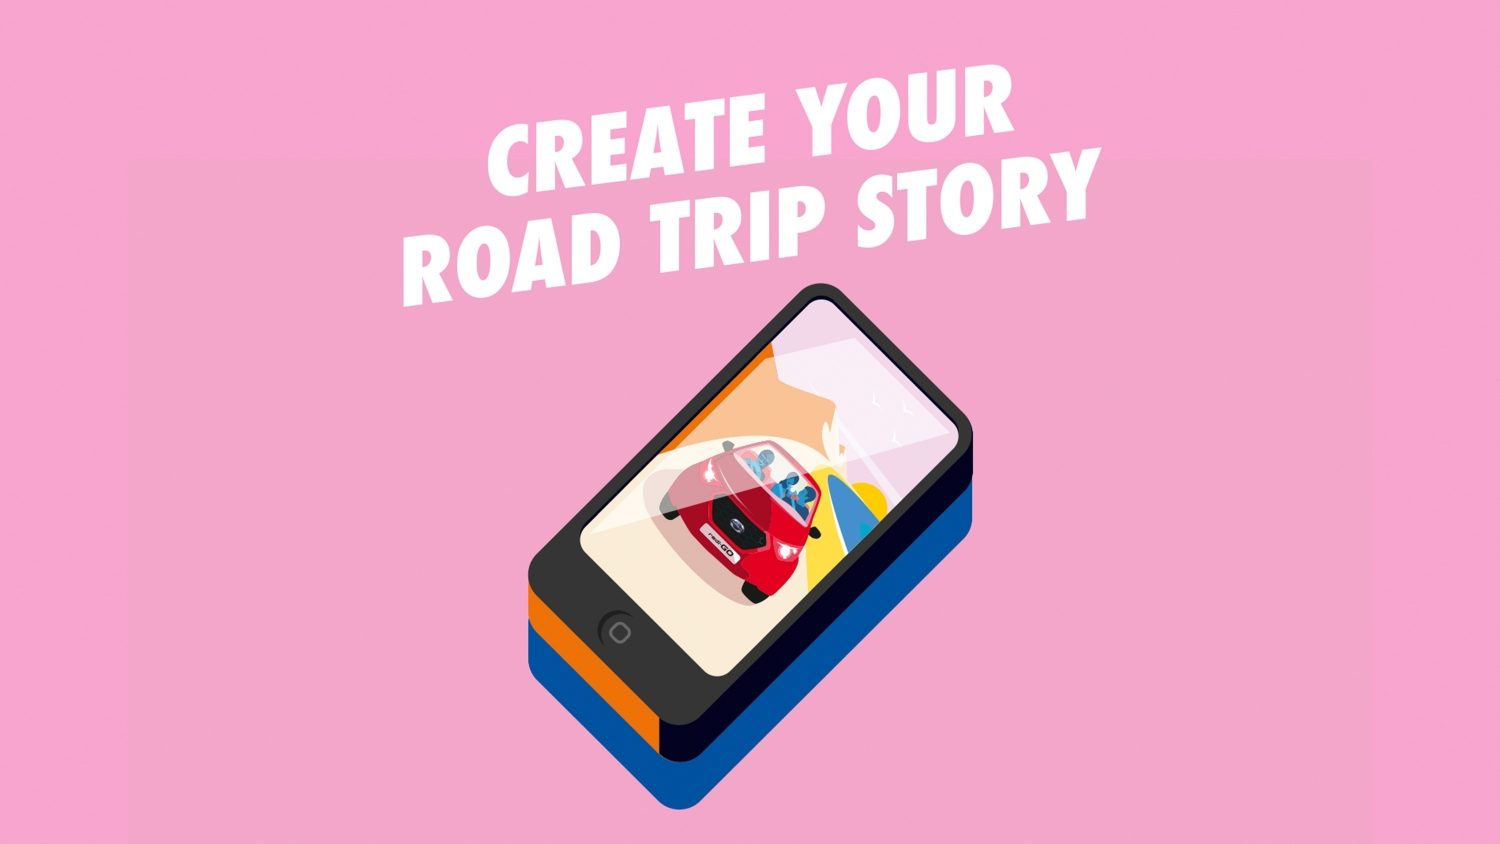 Datsun Love - Create your road trip story